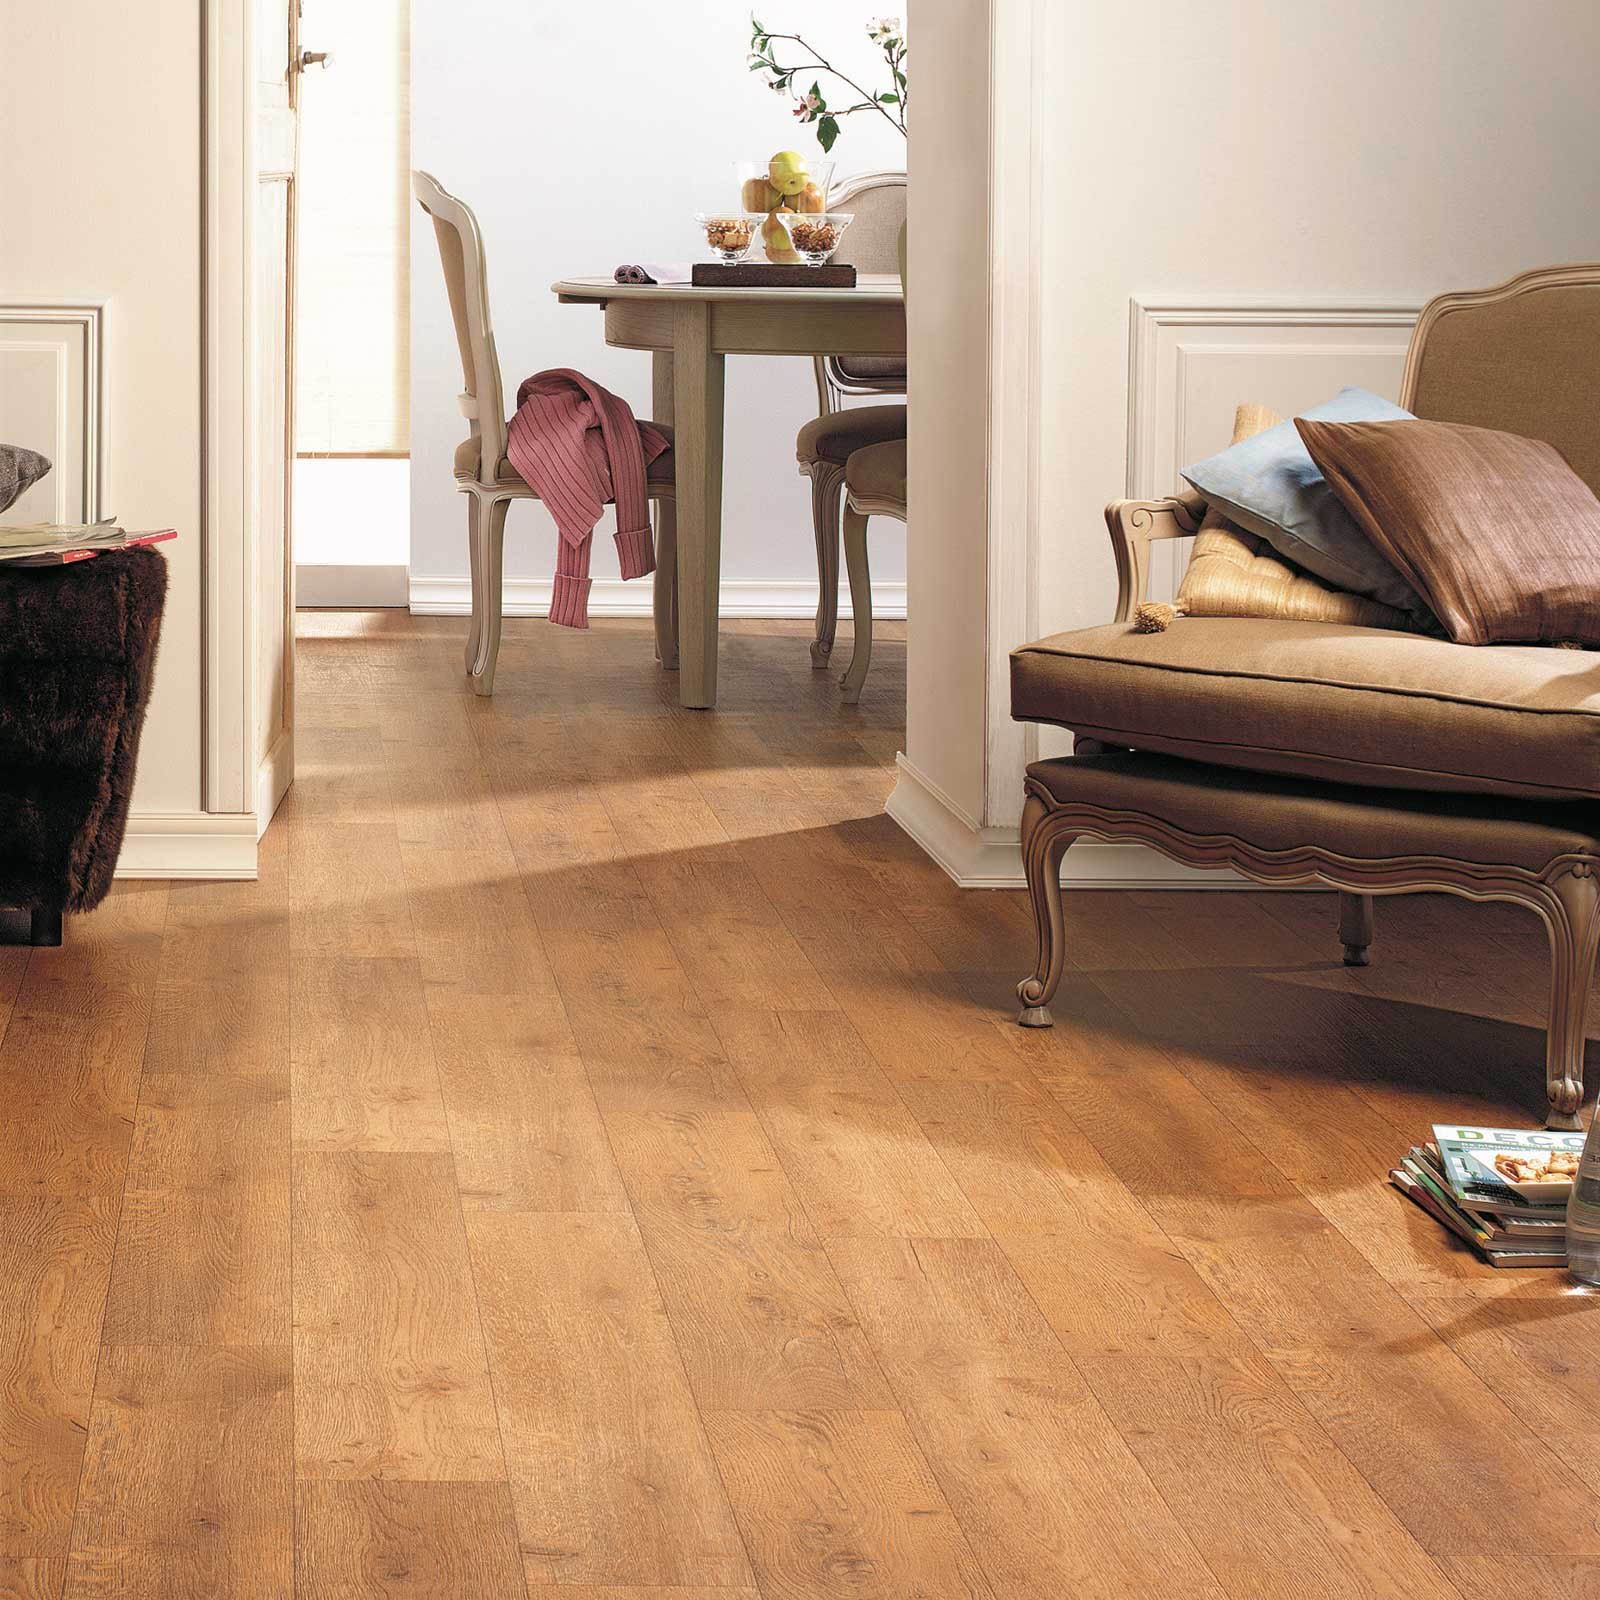 Presto Wood Vinyl Flooring Lifestyle